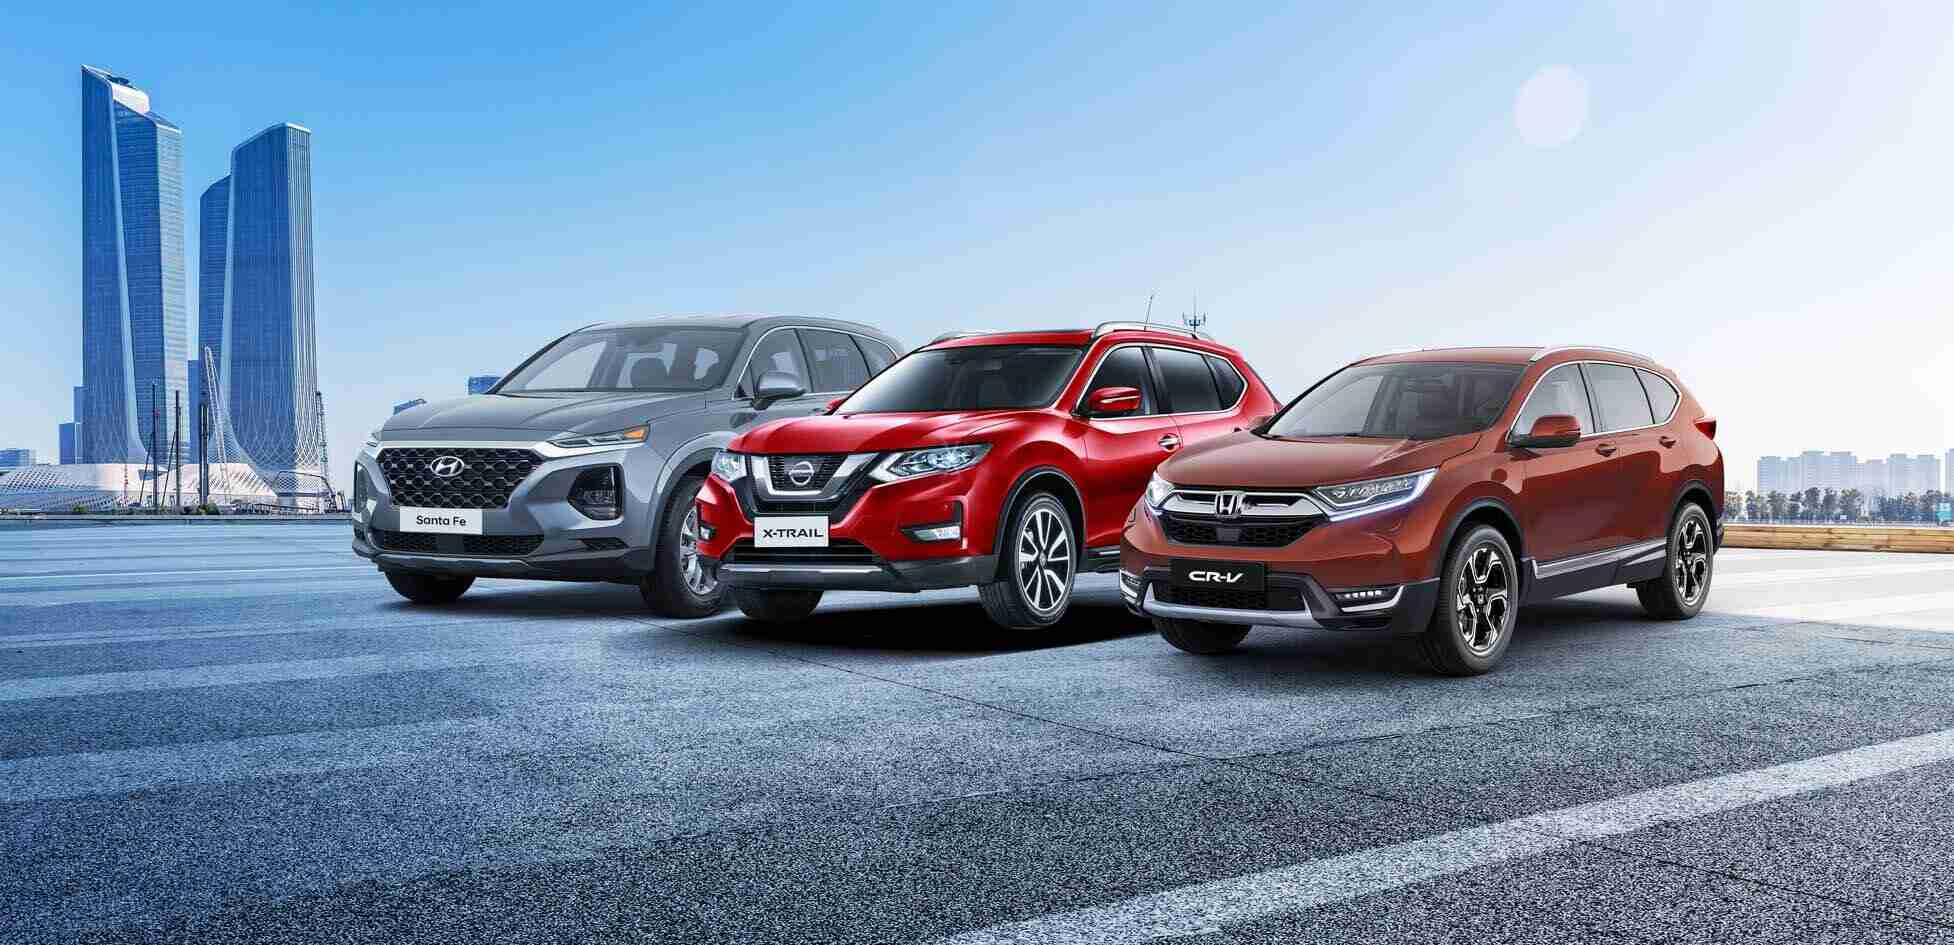 New Nissan X-Trail launched in China to shake up fast-growing SU